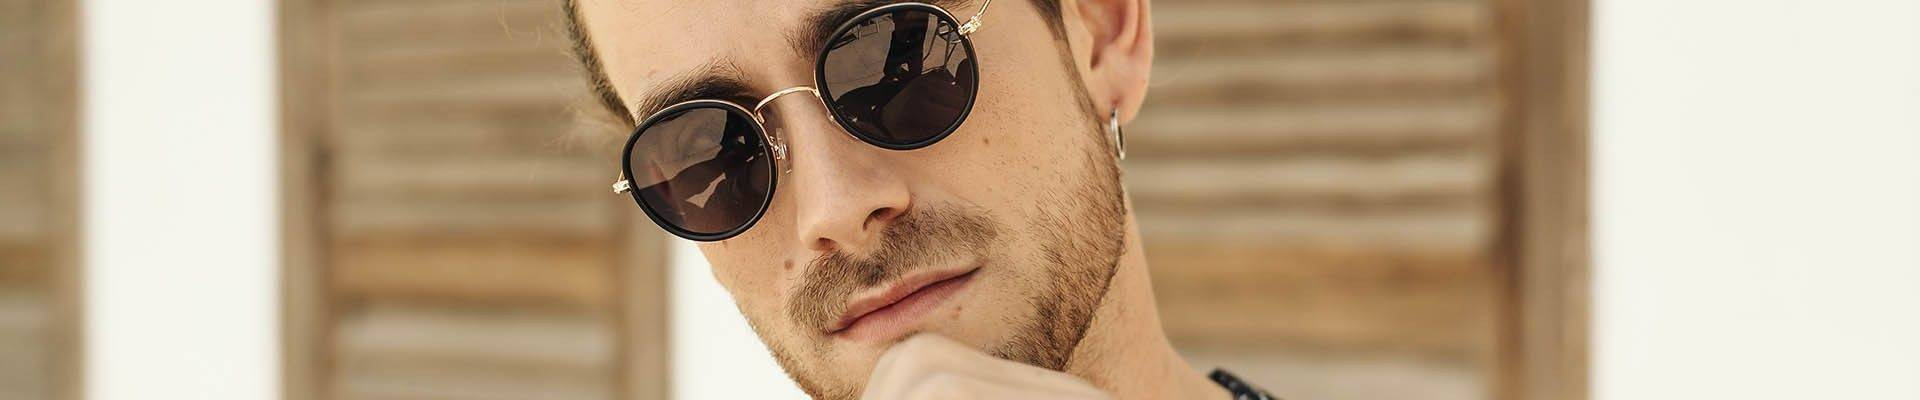 Sunglasses for men online shop by Charly Therapy